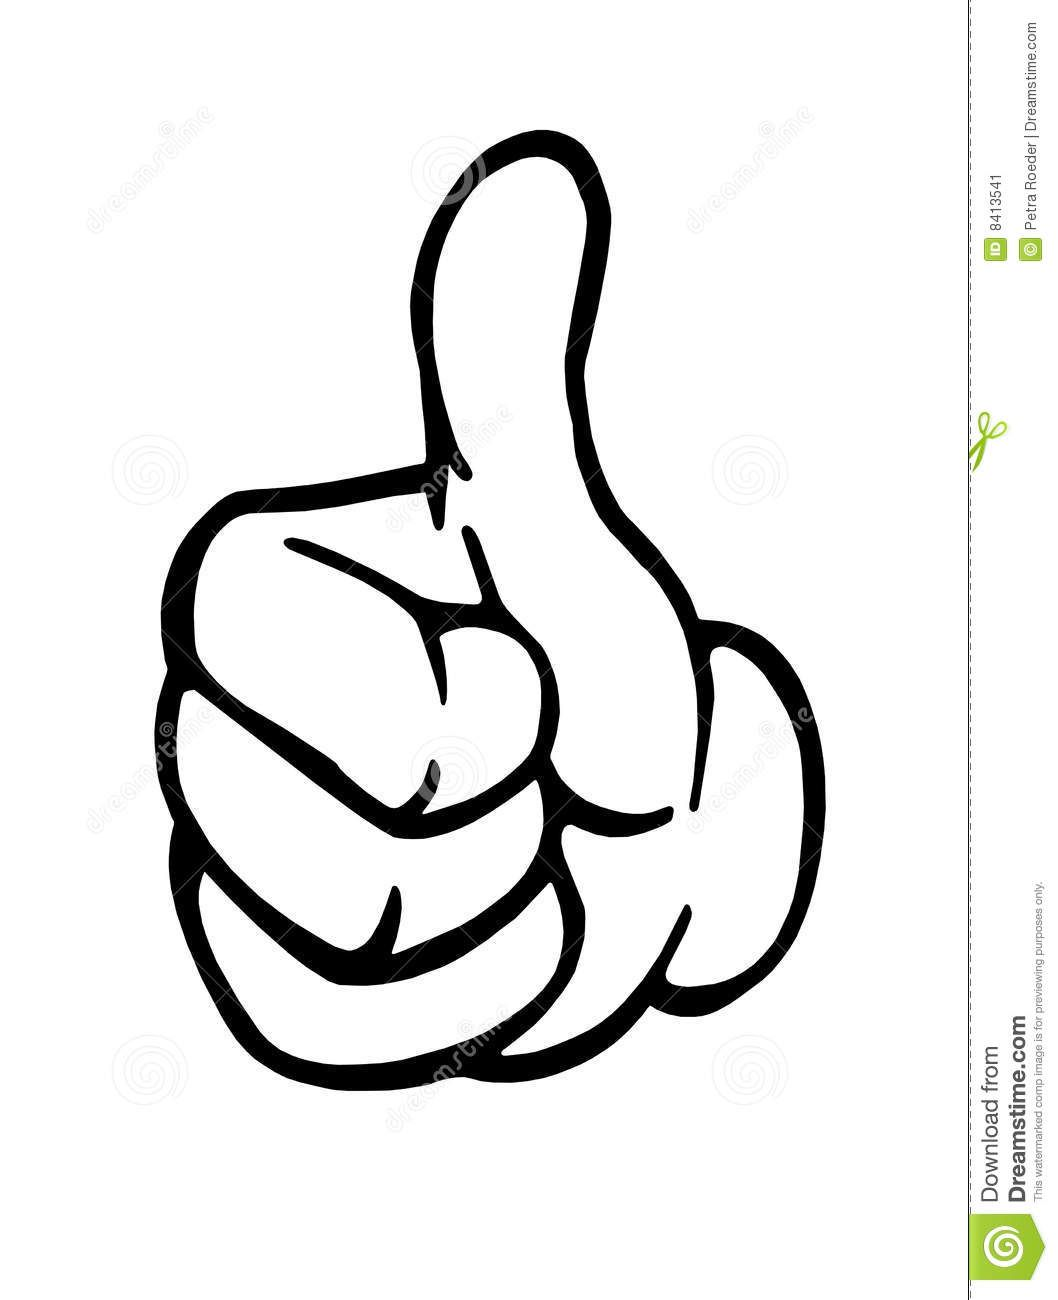 Thumbs Up Hand Clipart